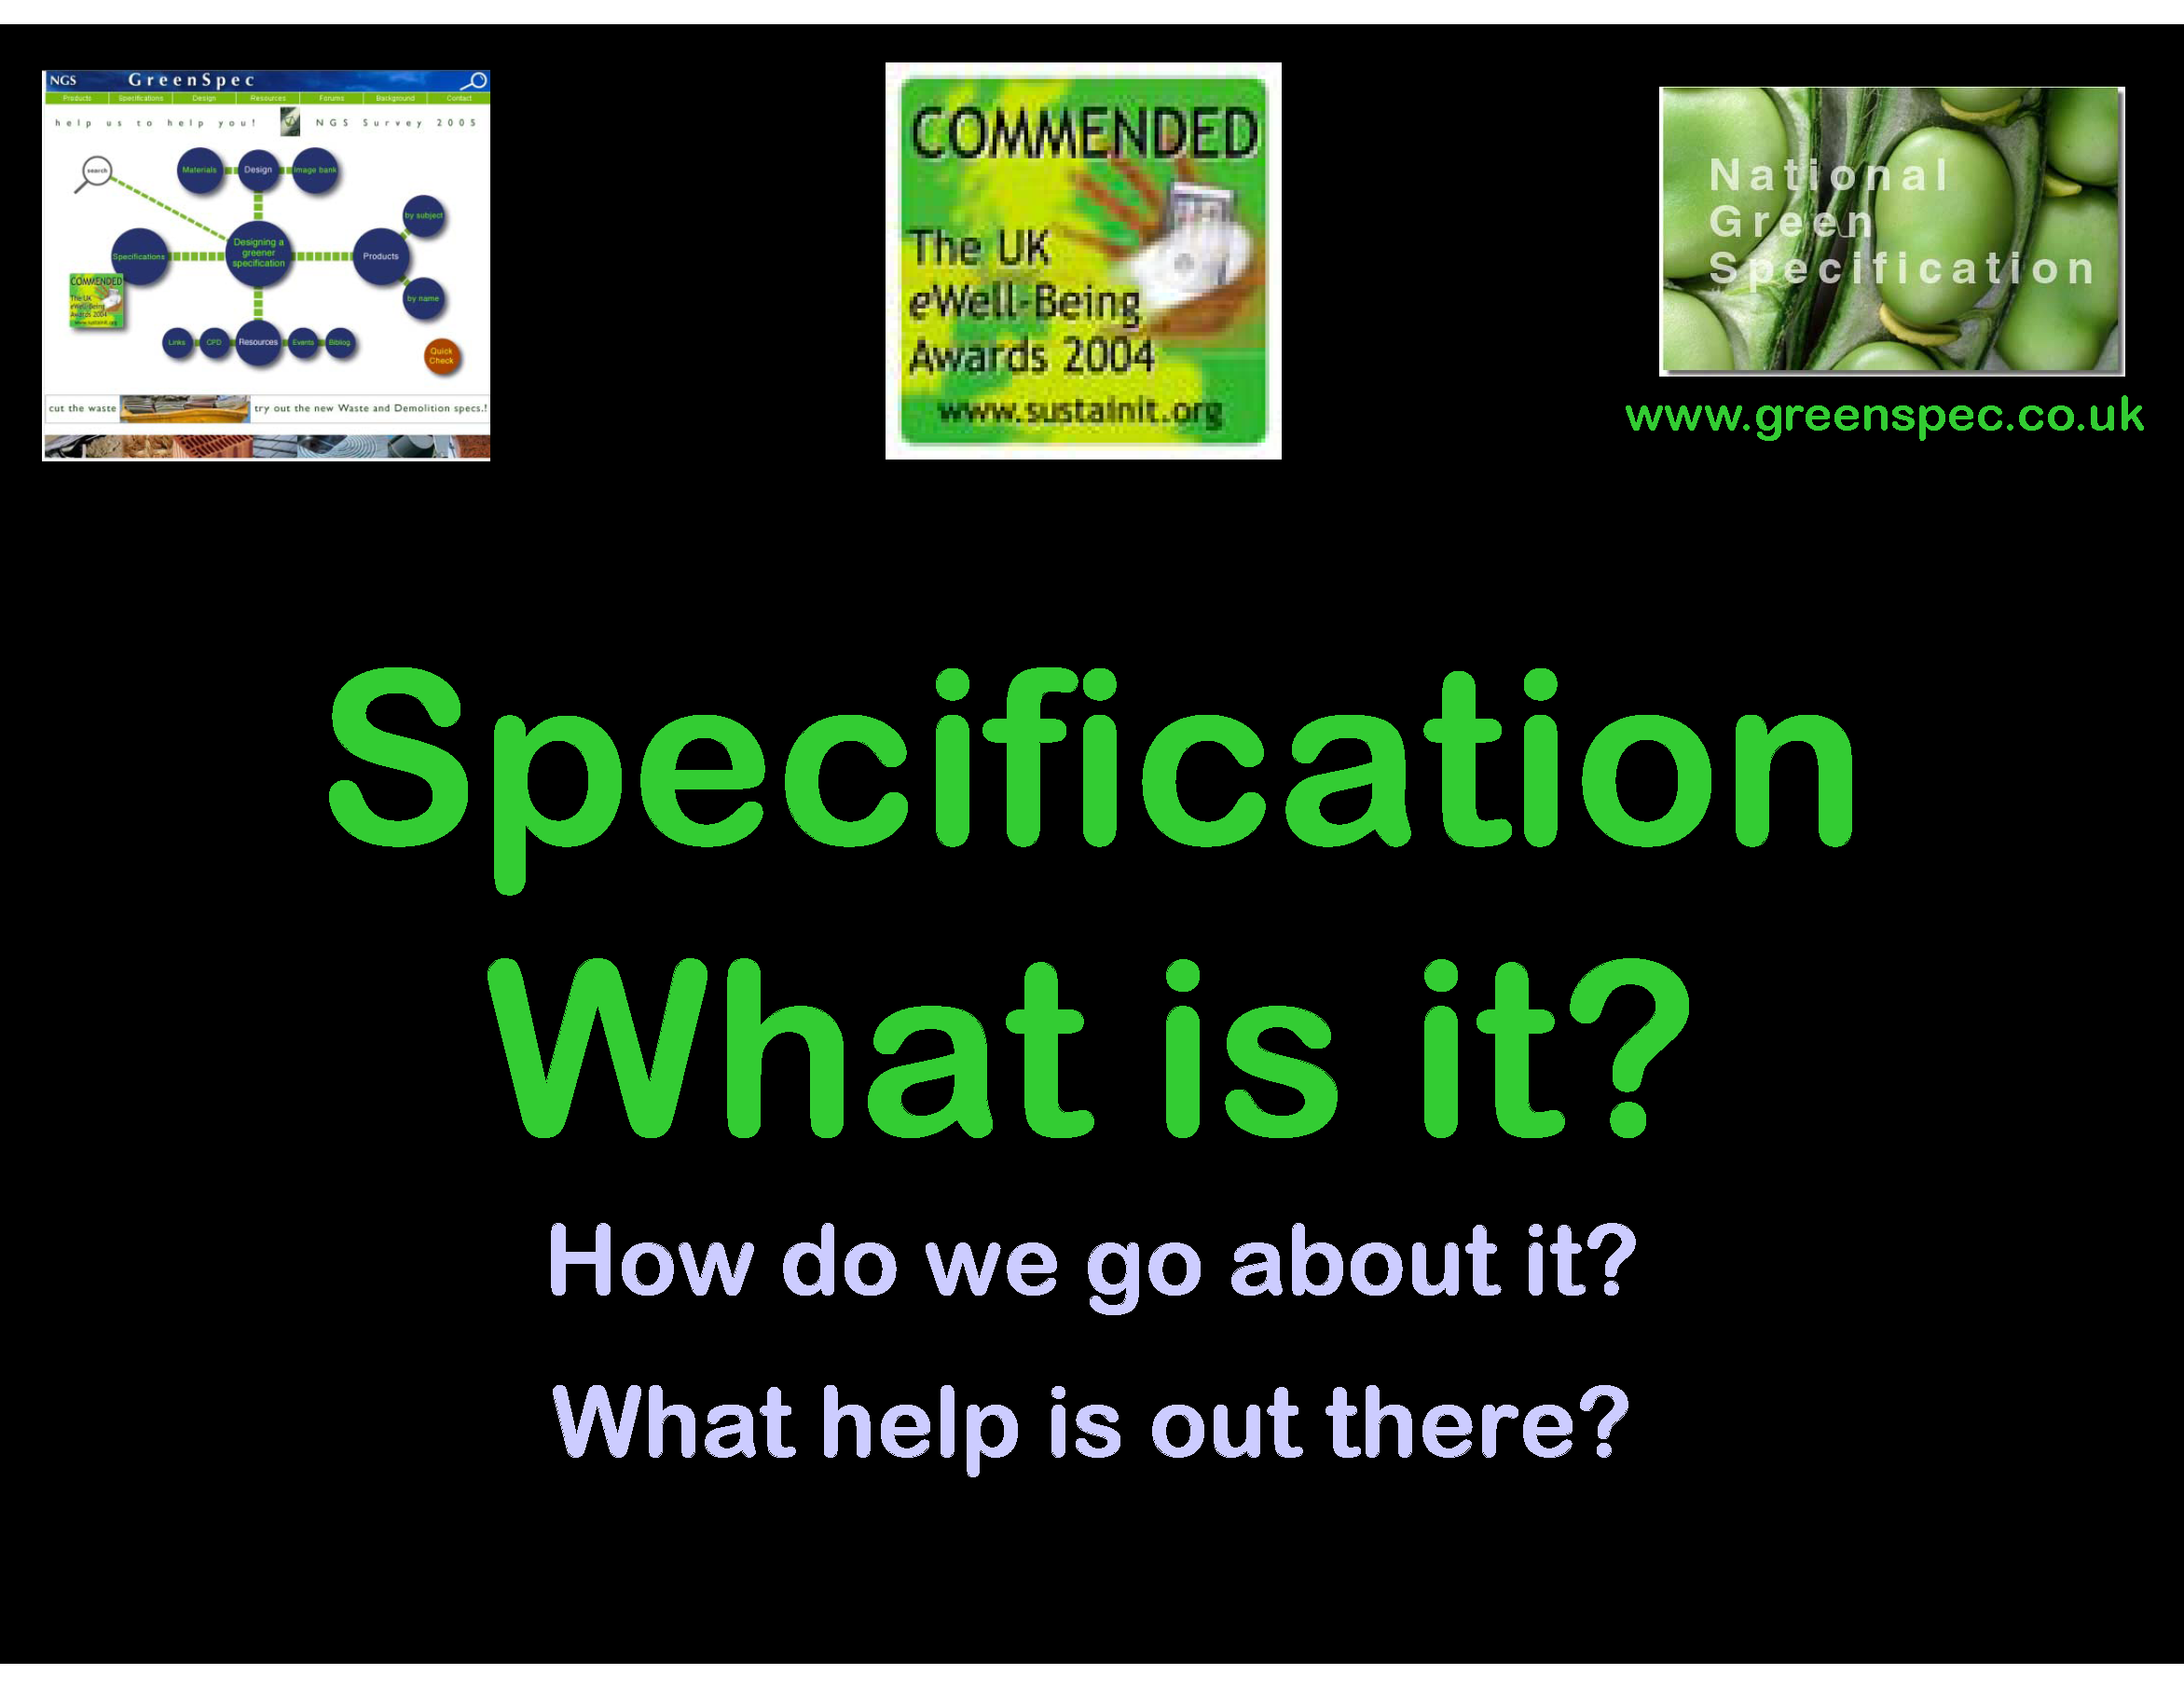 SpecificationWhatIsIt.png